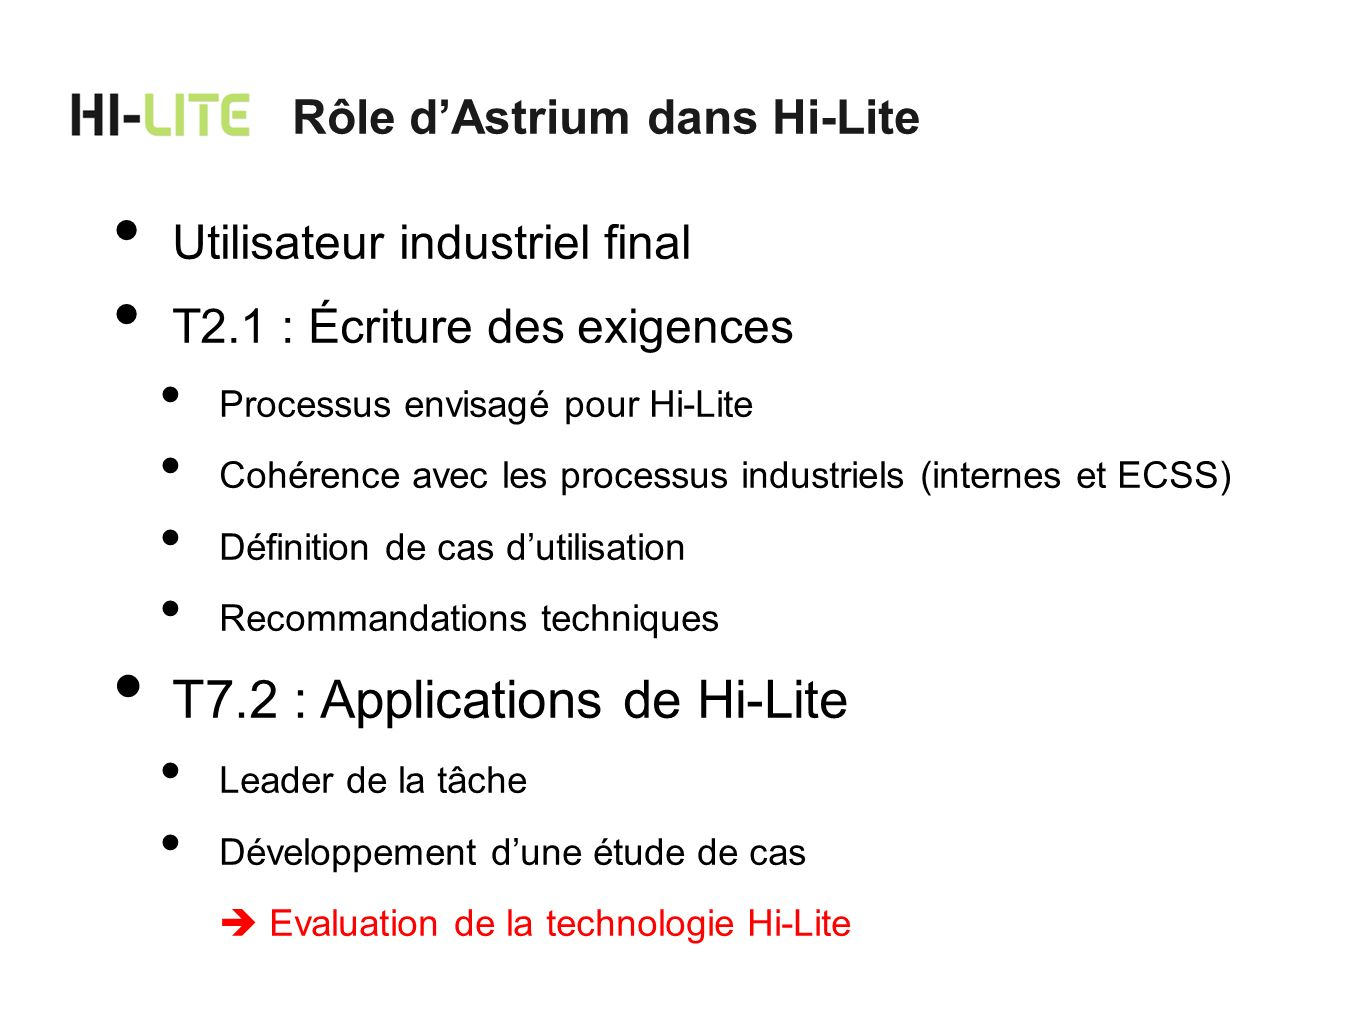 T7.2 : Applications de Hi-Lite